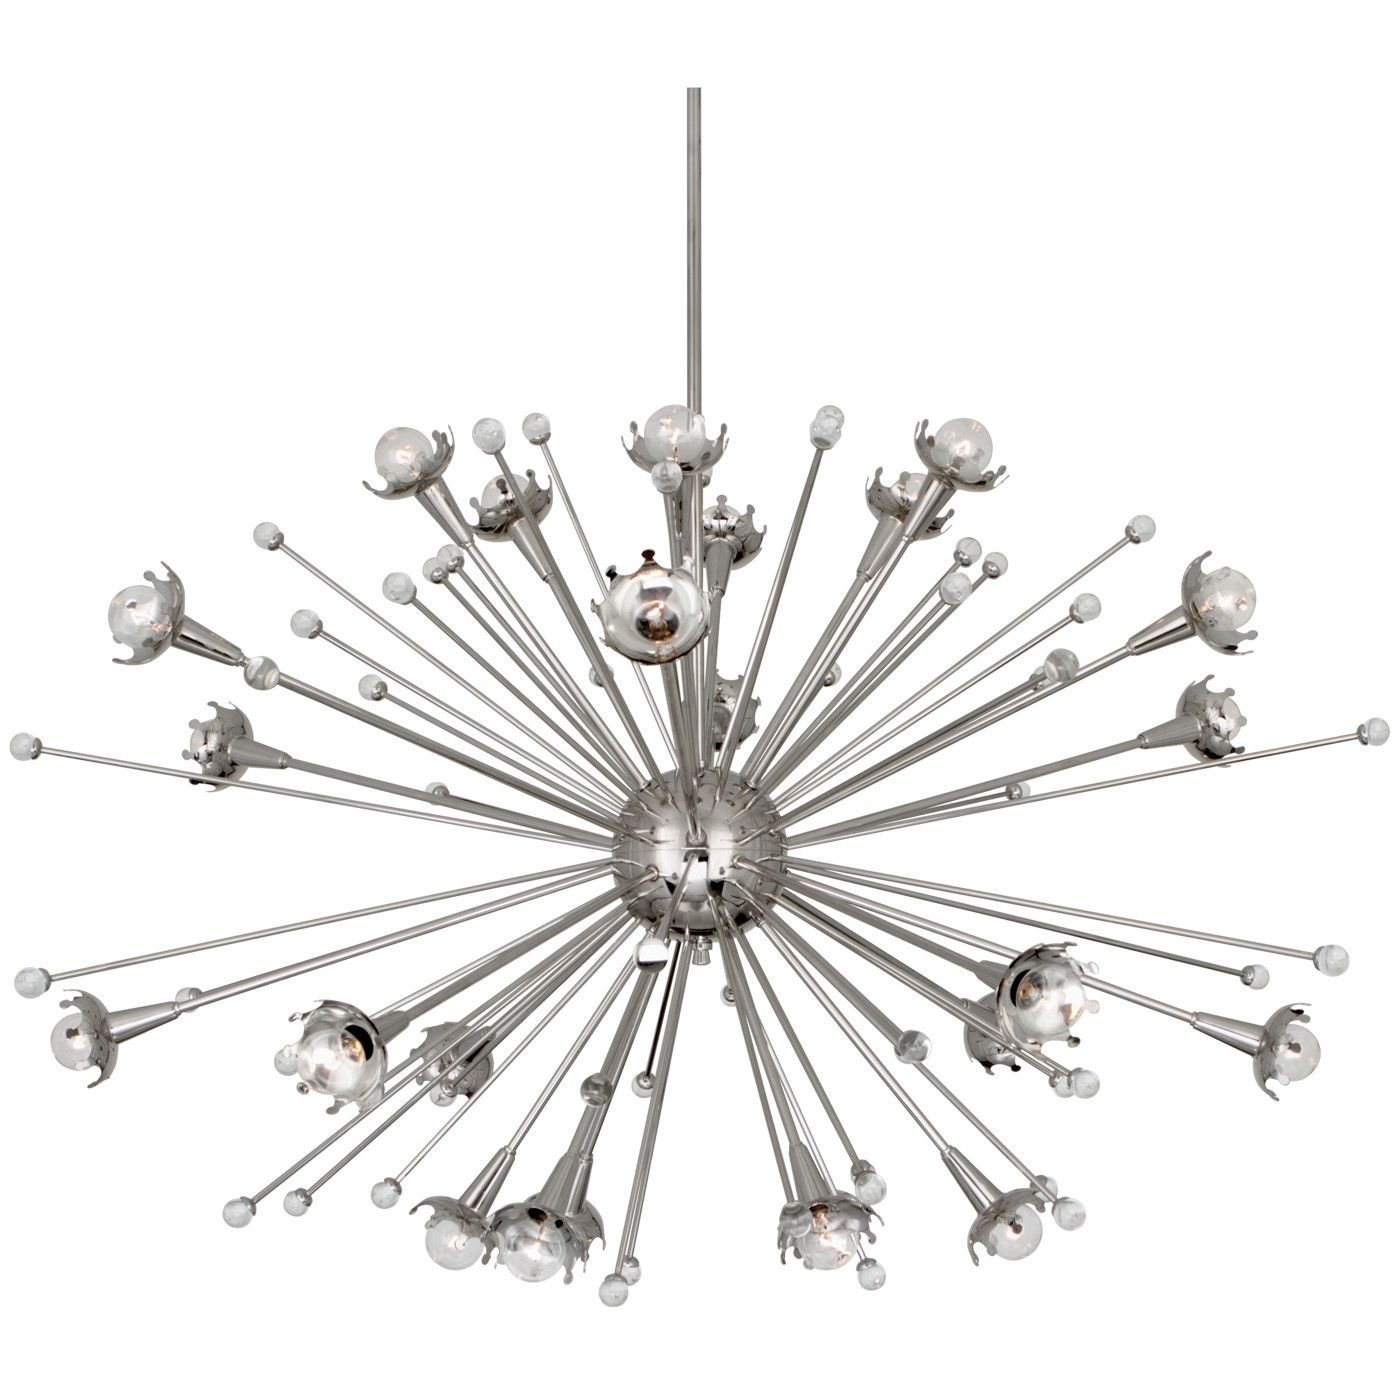 Modern lighting giant sputnik chandelier ceiling lamp jonathan modern lighting giant sputnik chandelier ceiling lamp jonathan adler i saw this light at arubaitofo Image collections